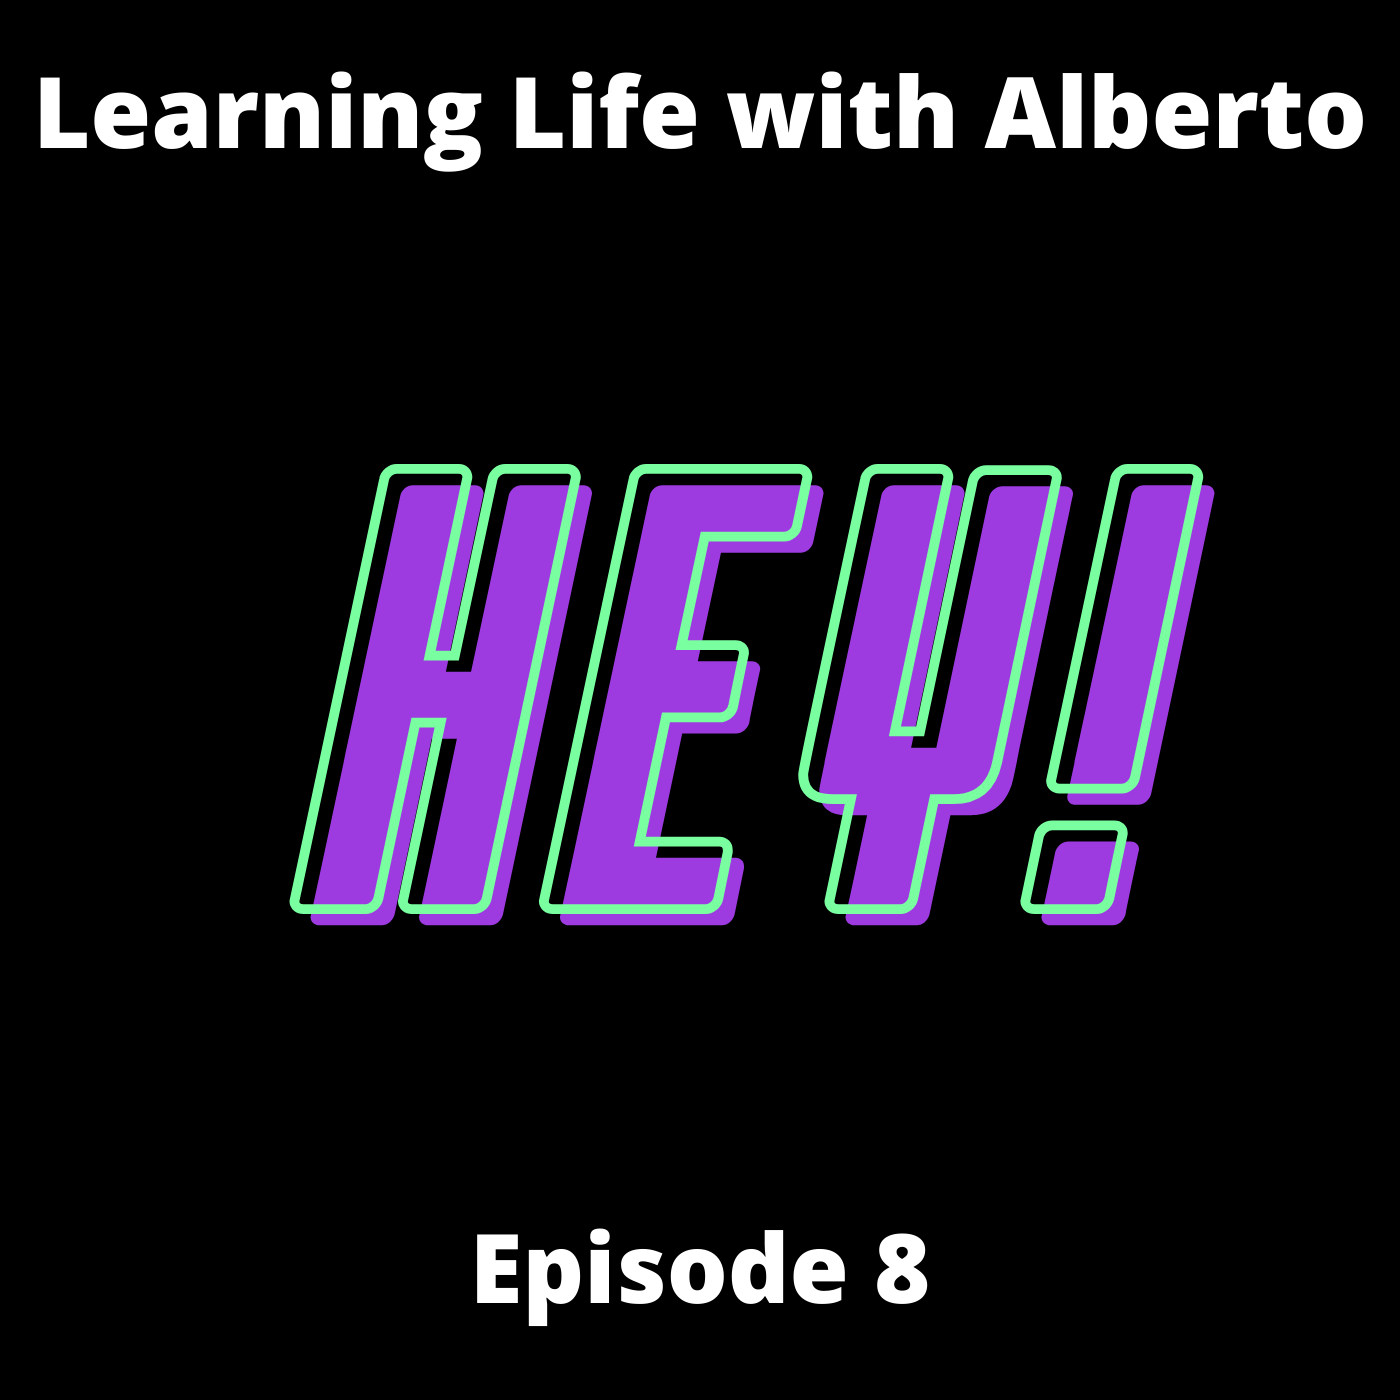 Learning Life with Alberto (1)